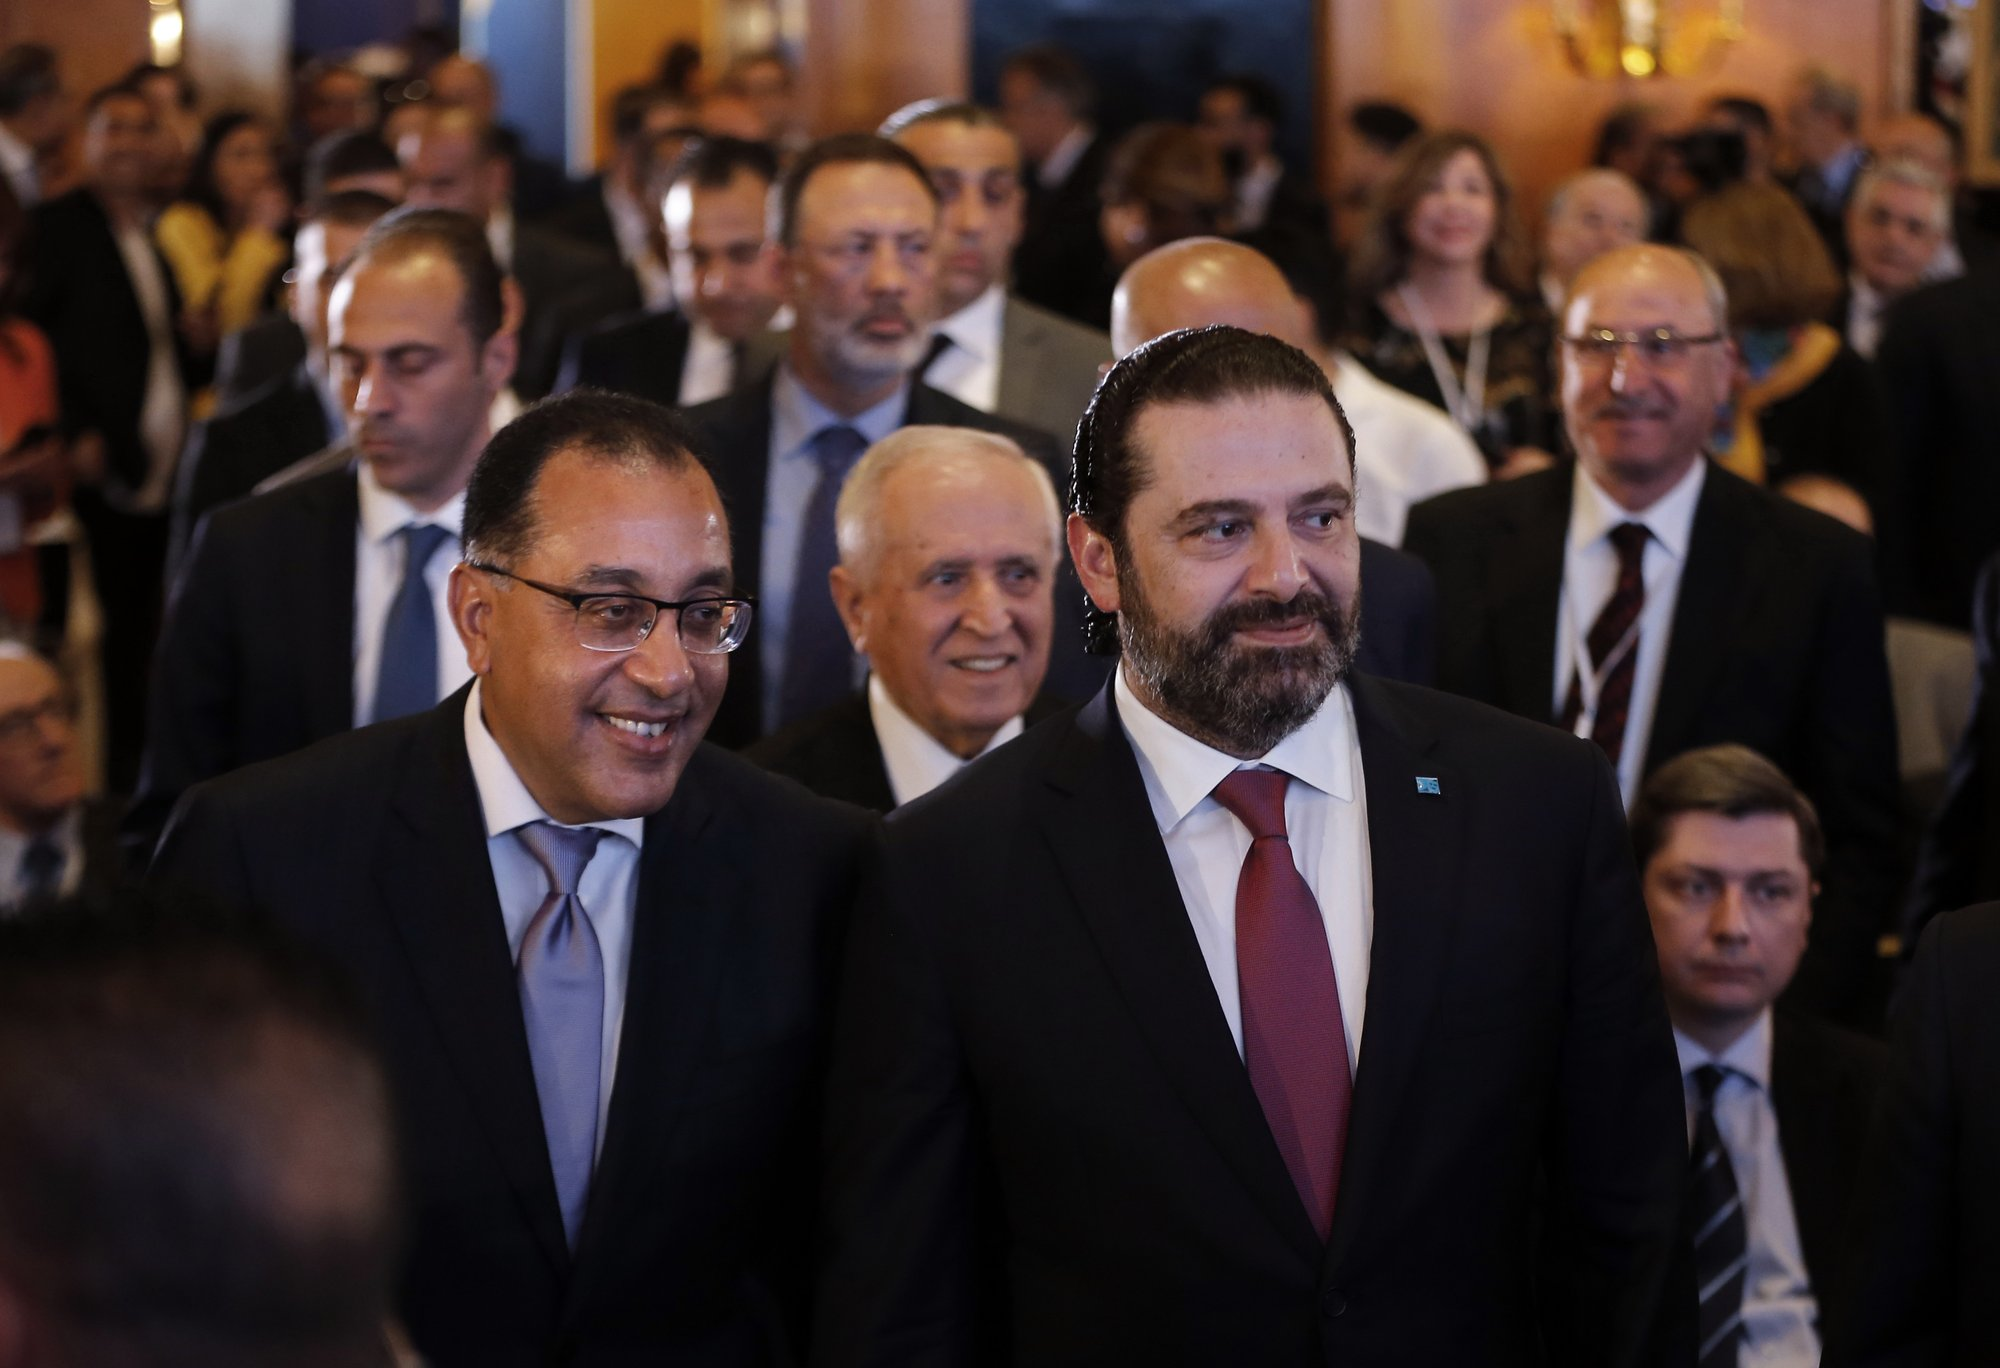 PM: Lebanon should learn from Egypt's economic development